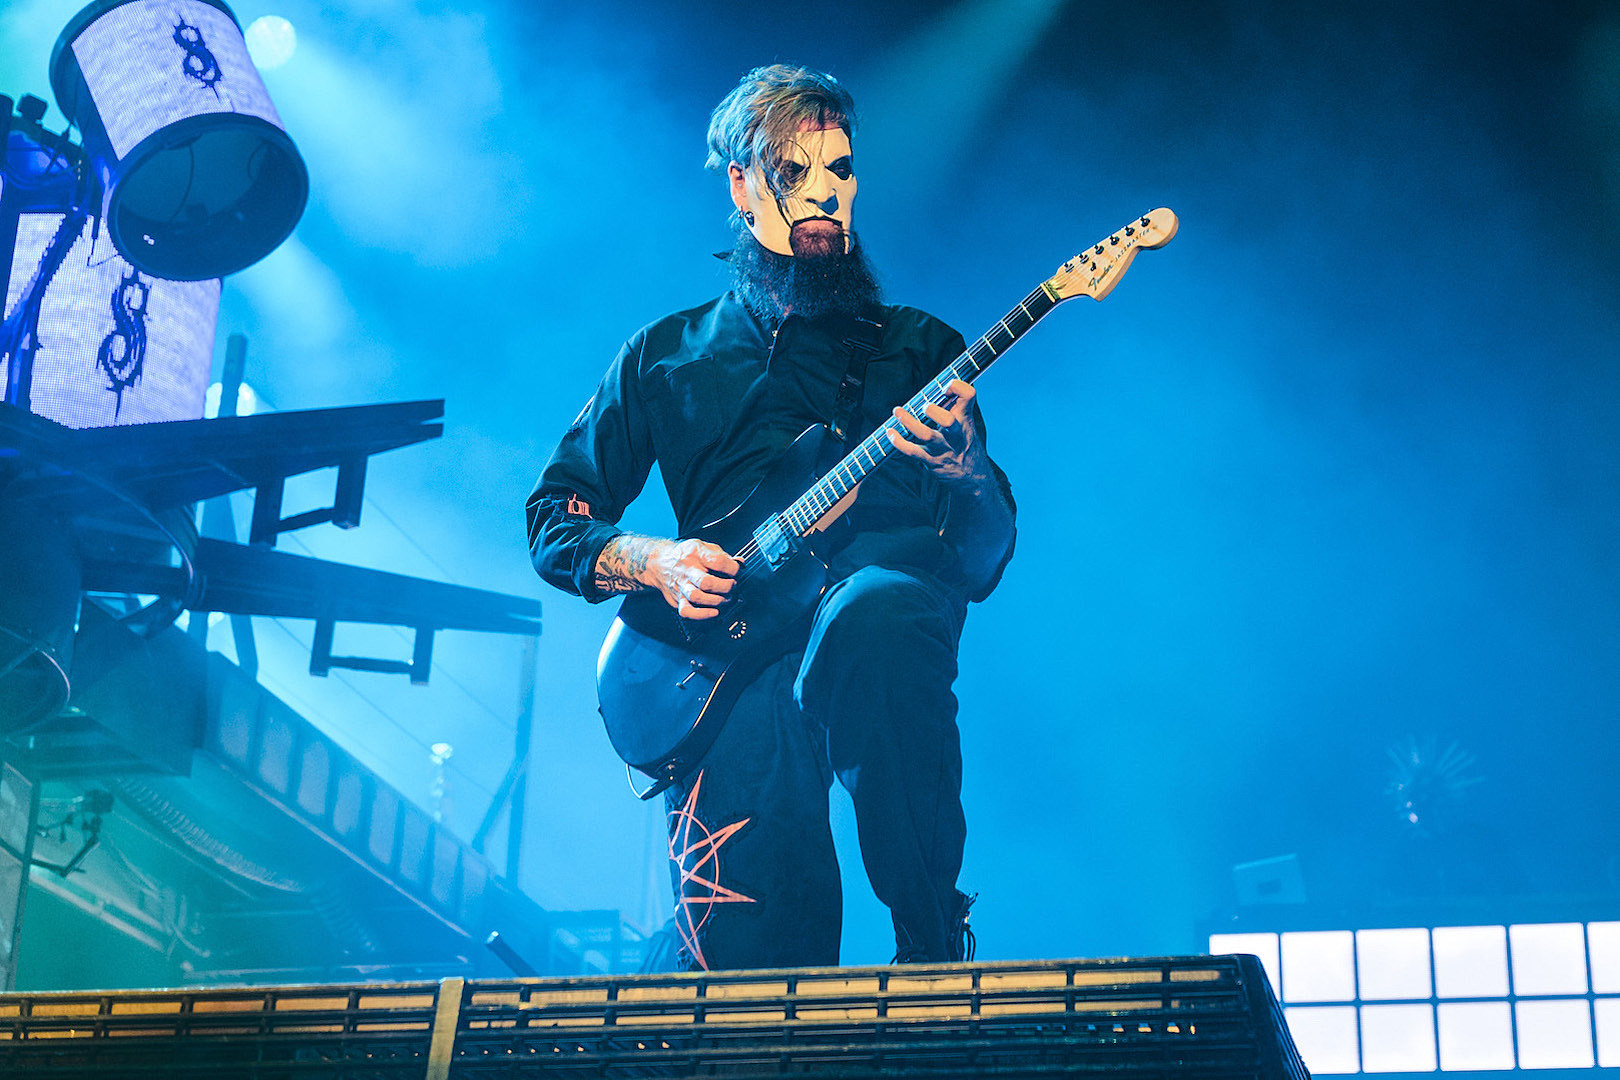 Jim Root Got a Guitar Over 10 Years Ago + Never Opened The Box